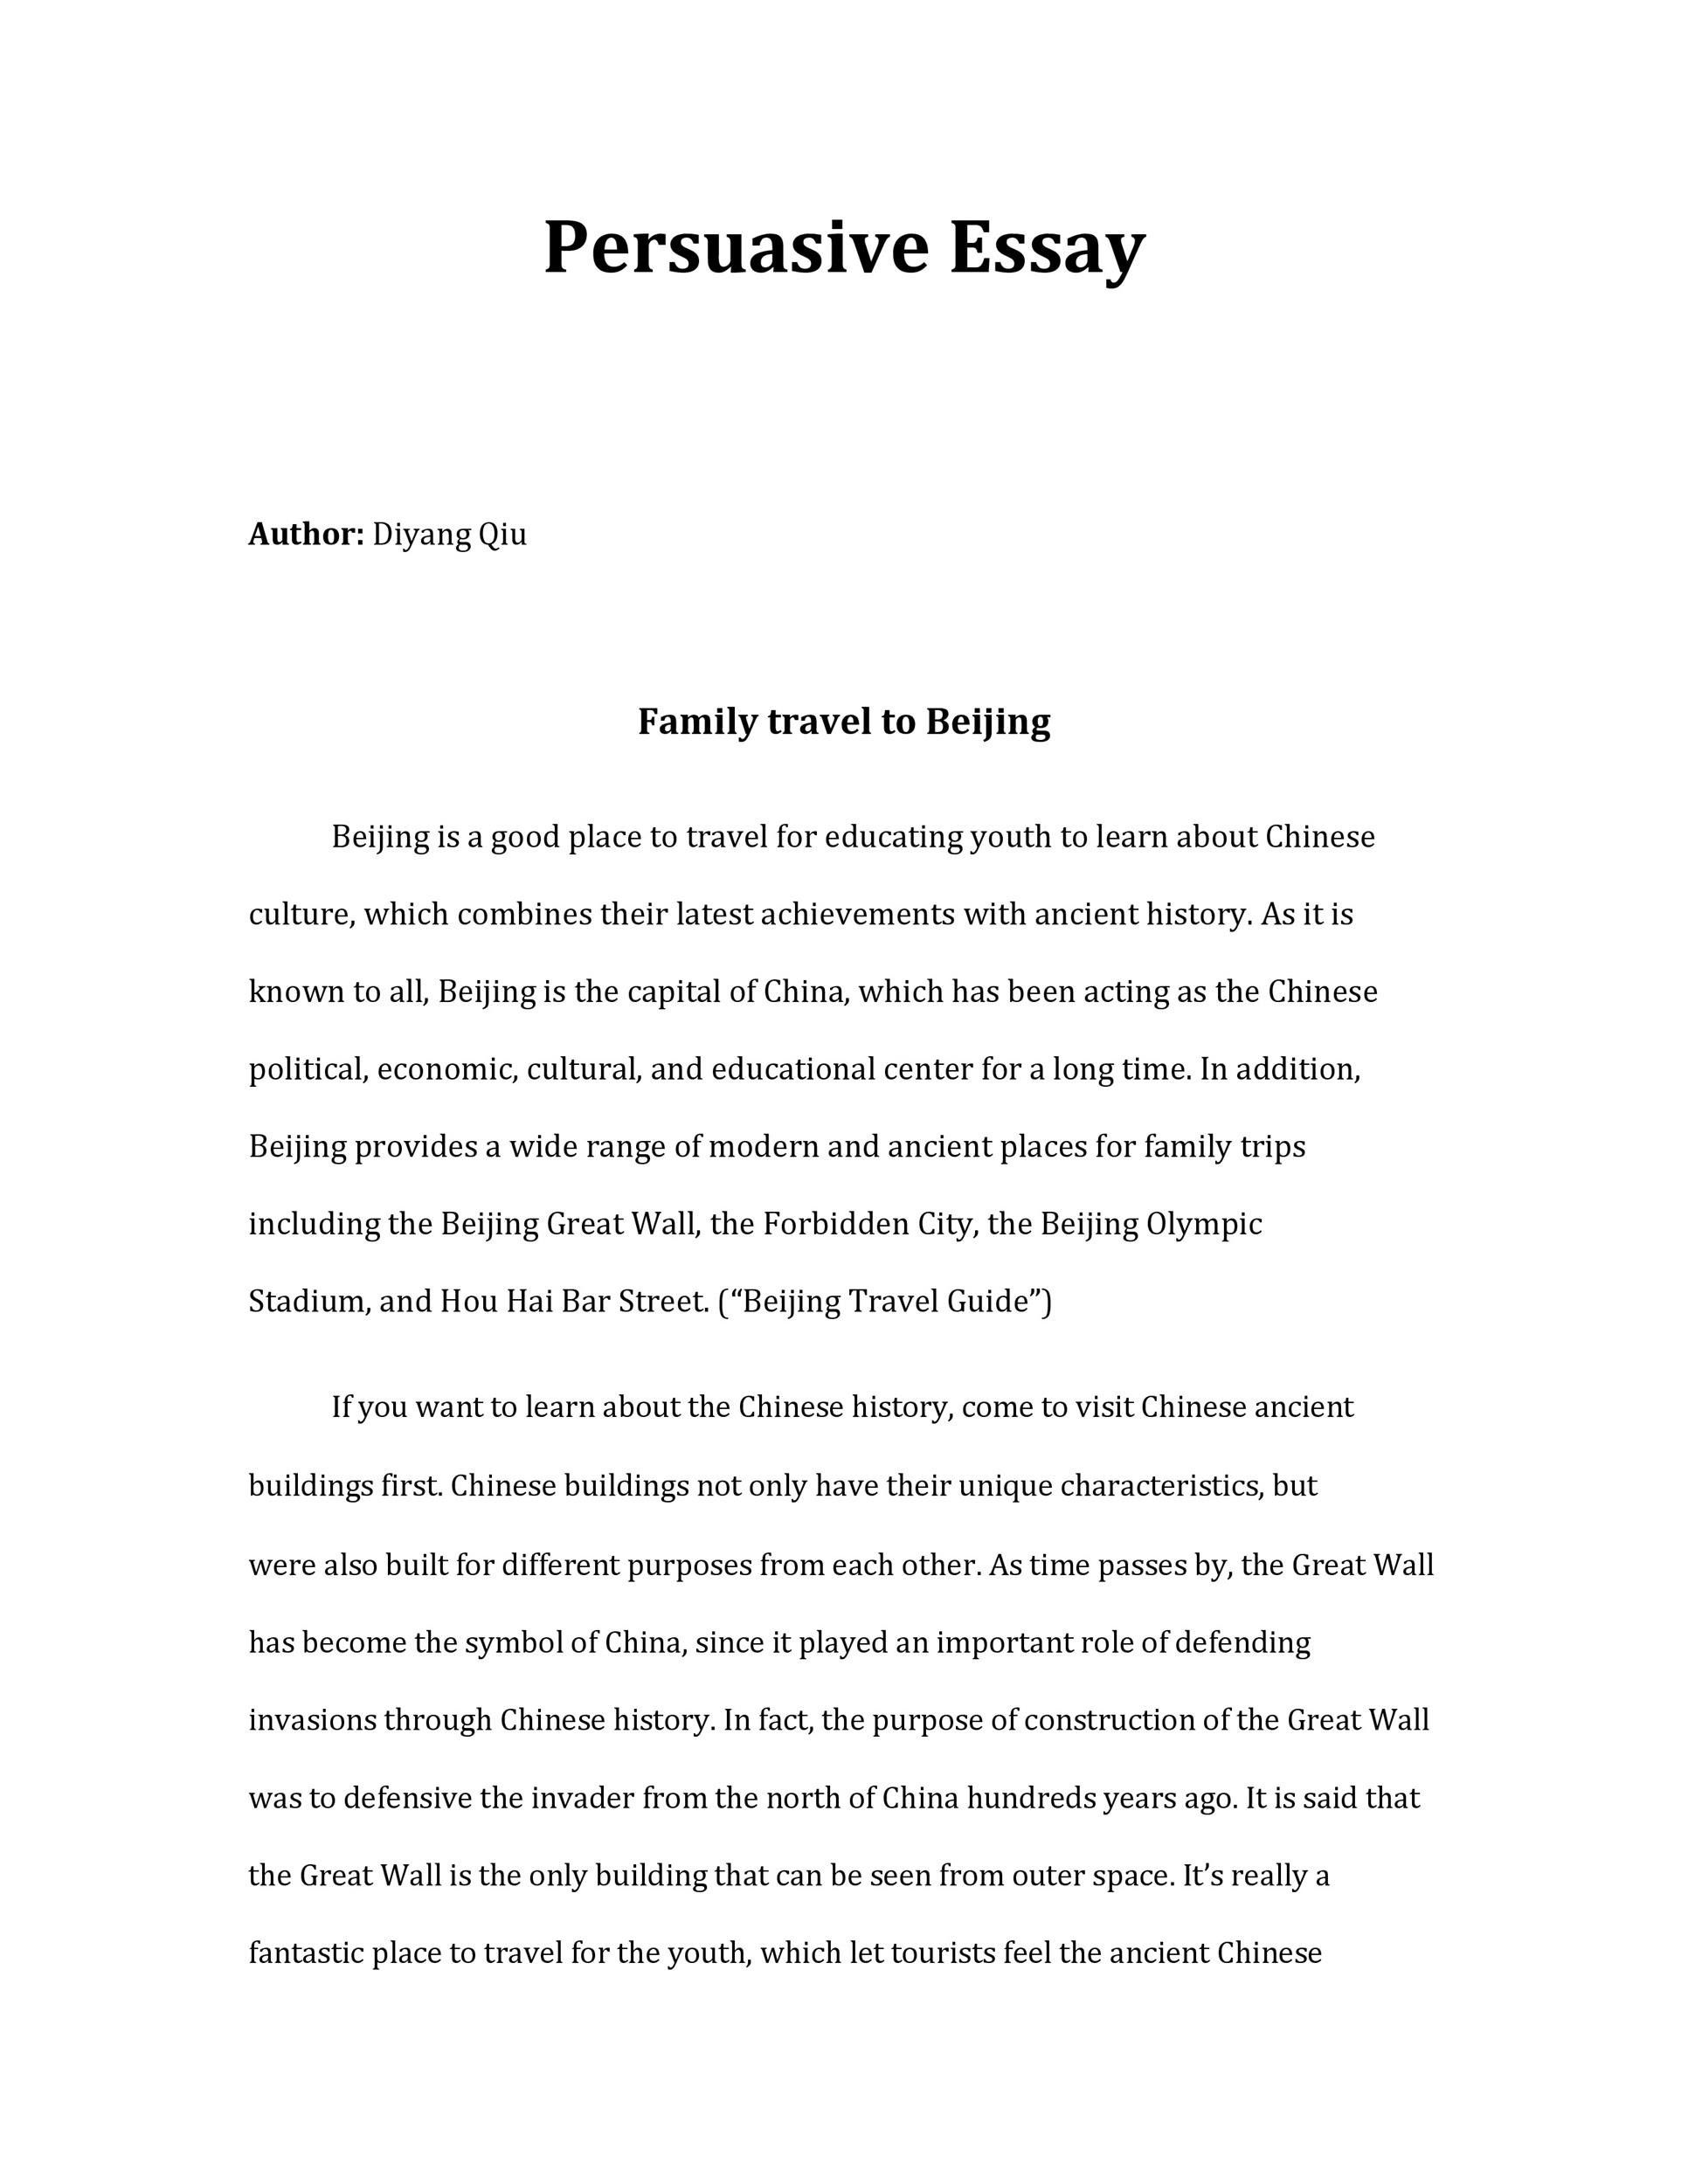 What is a good persuasive essay